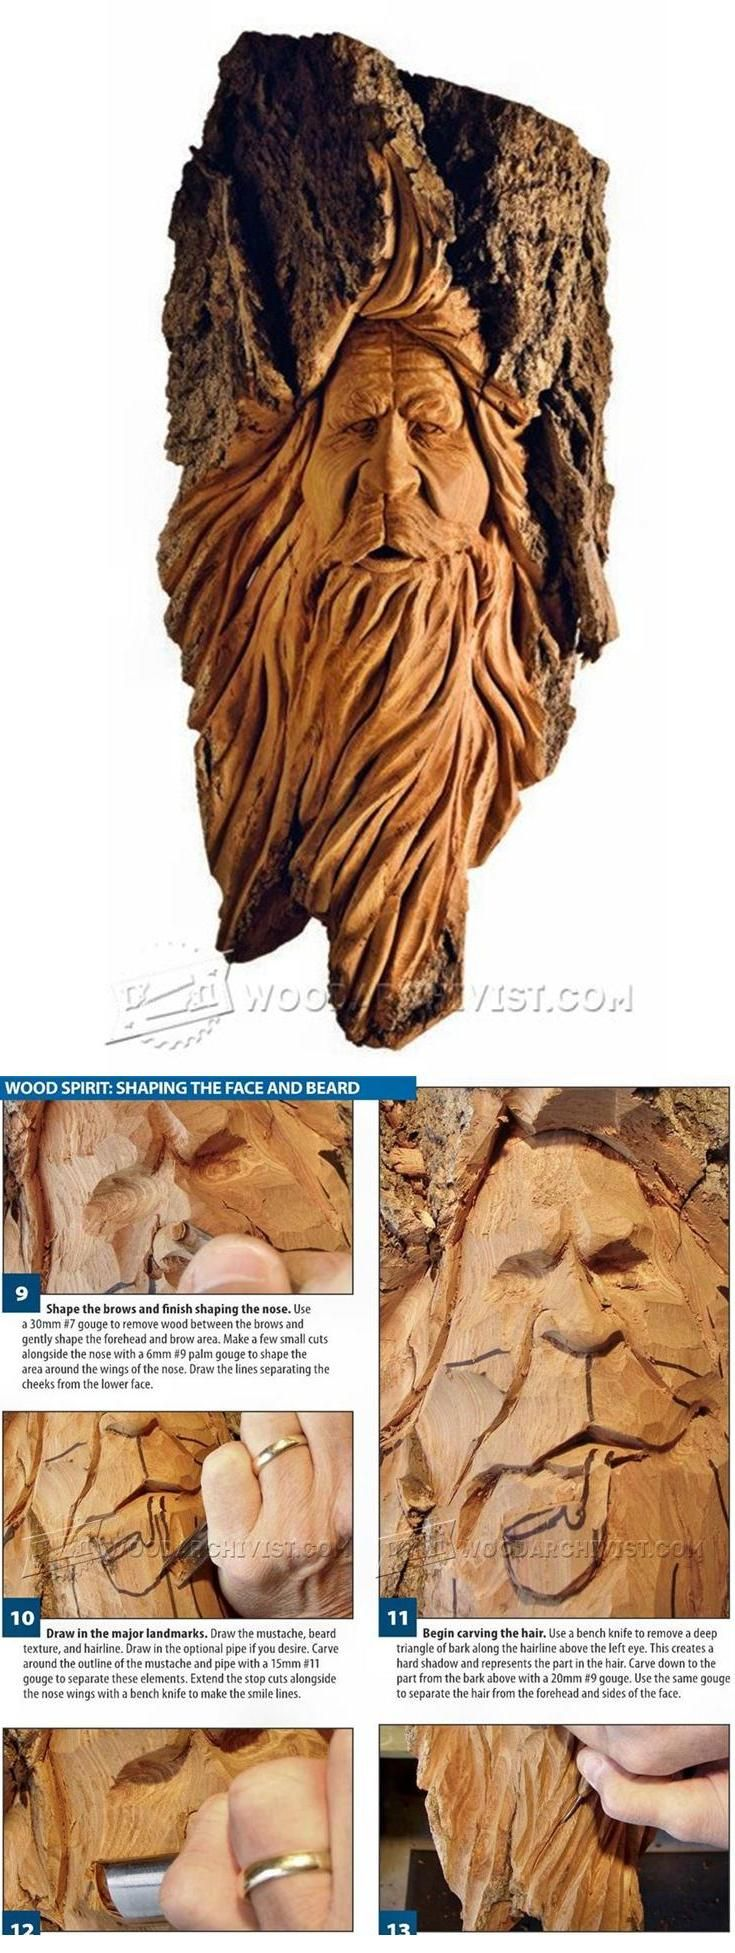 Best wood carving spirits images on pinterest